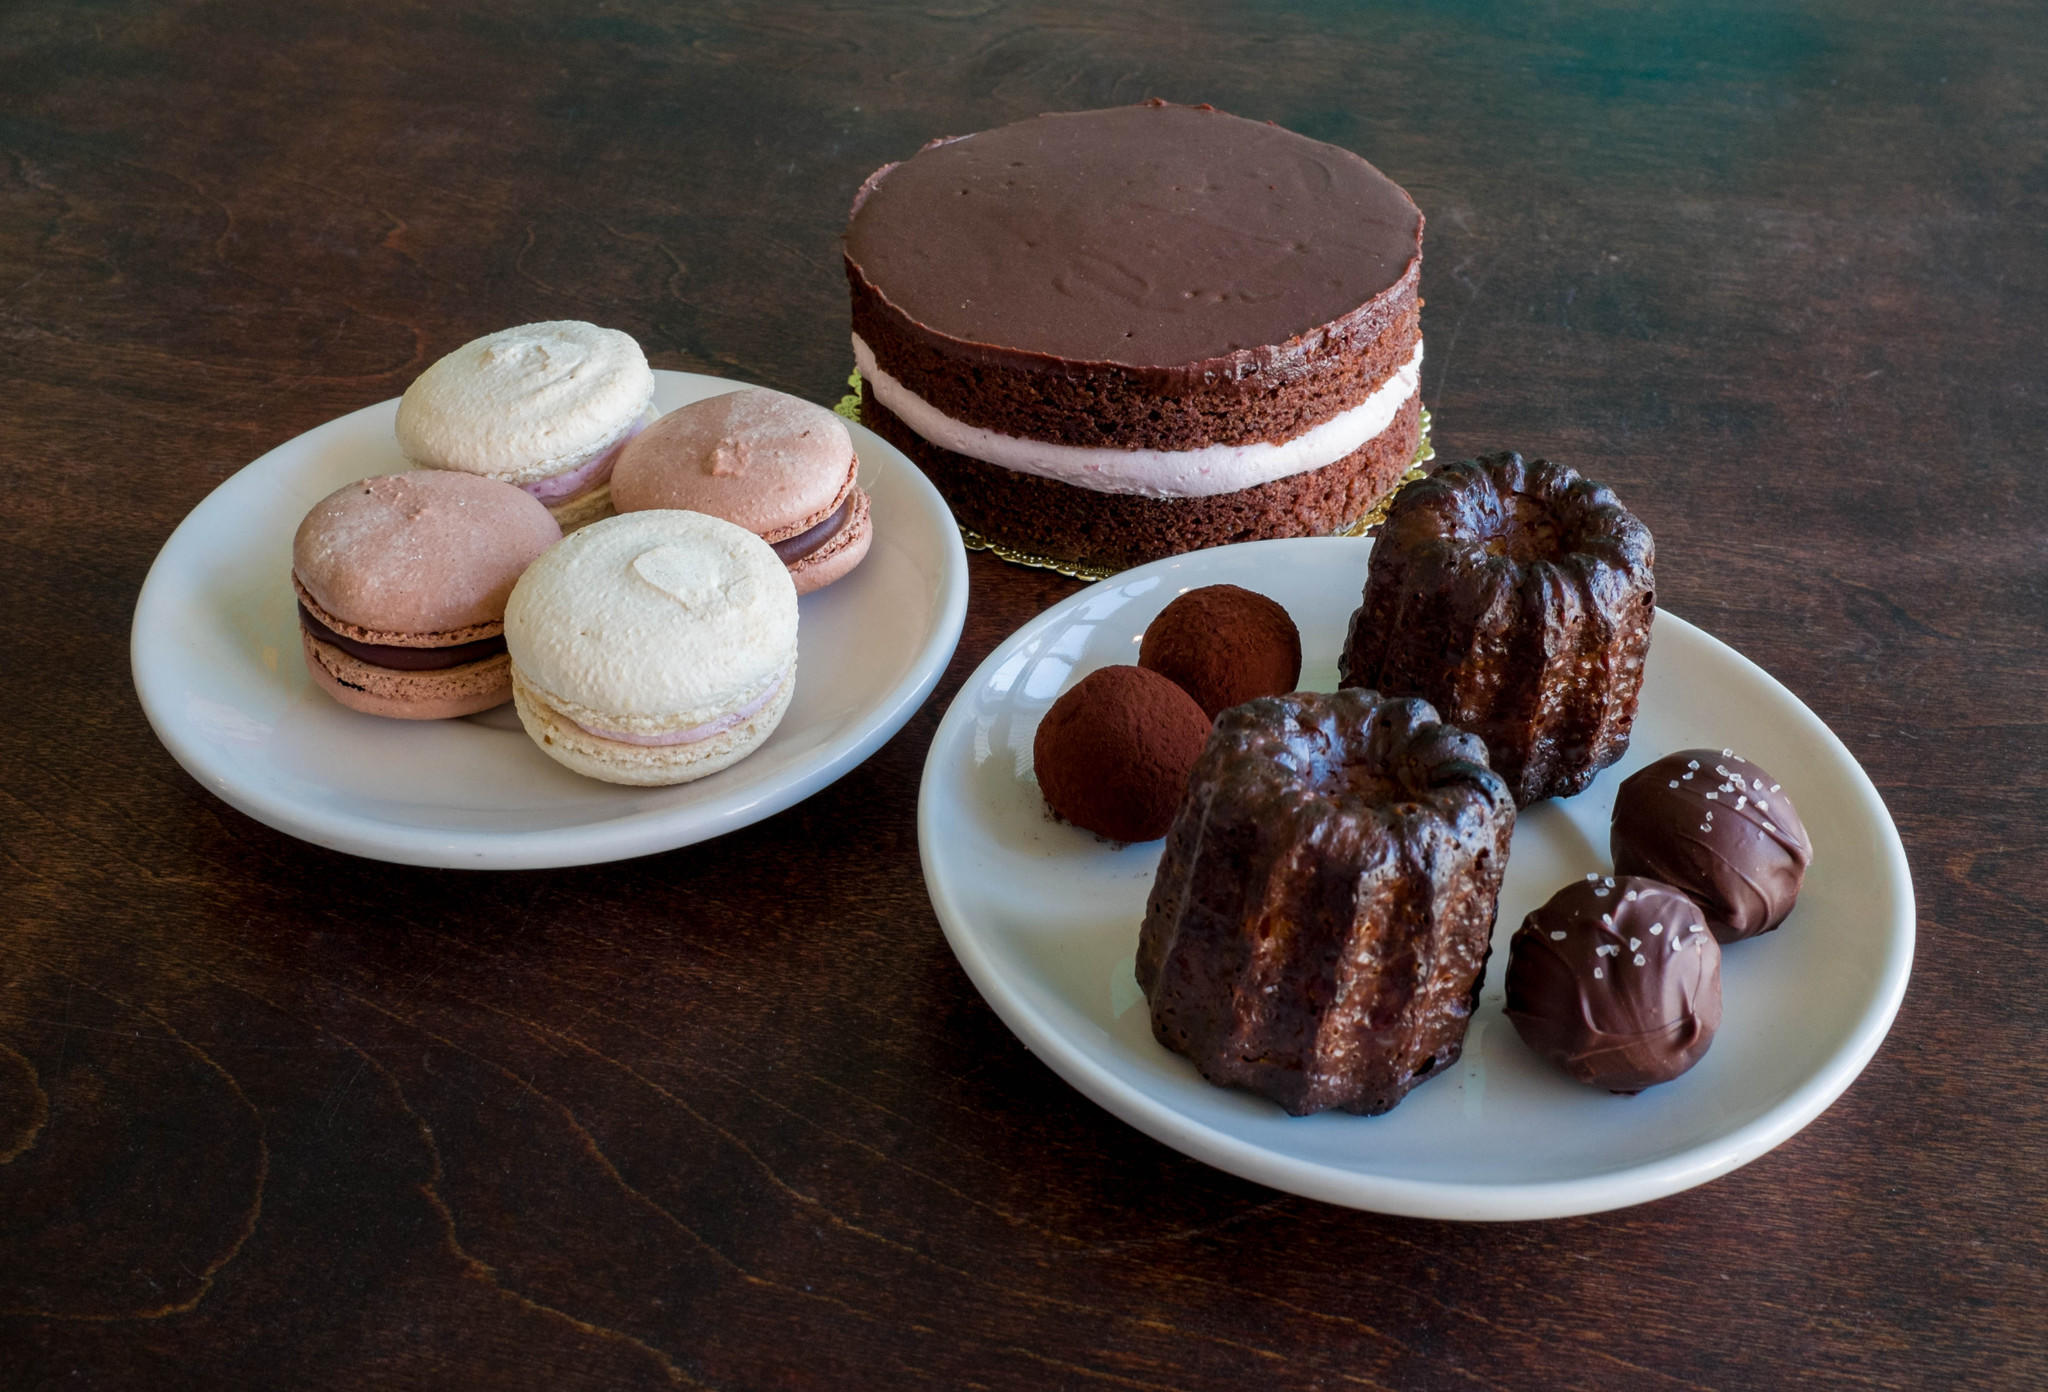 Bad Wolf Coffee's Valentine's Day gift box features macarons, a chocolate-raspberry cake for two, chocolate caneles and truffles.